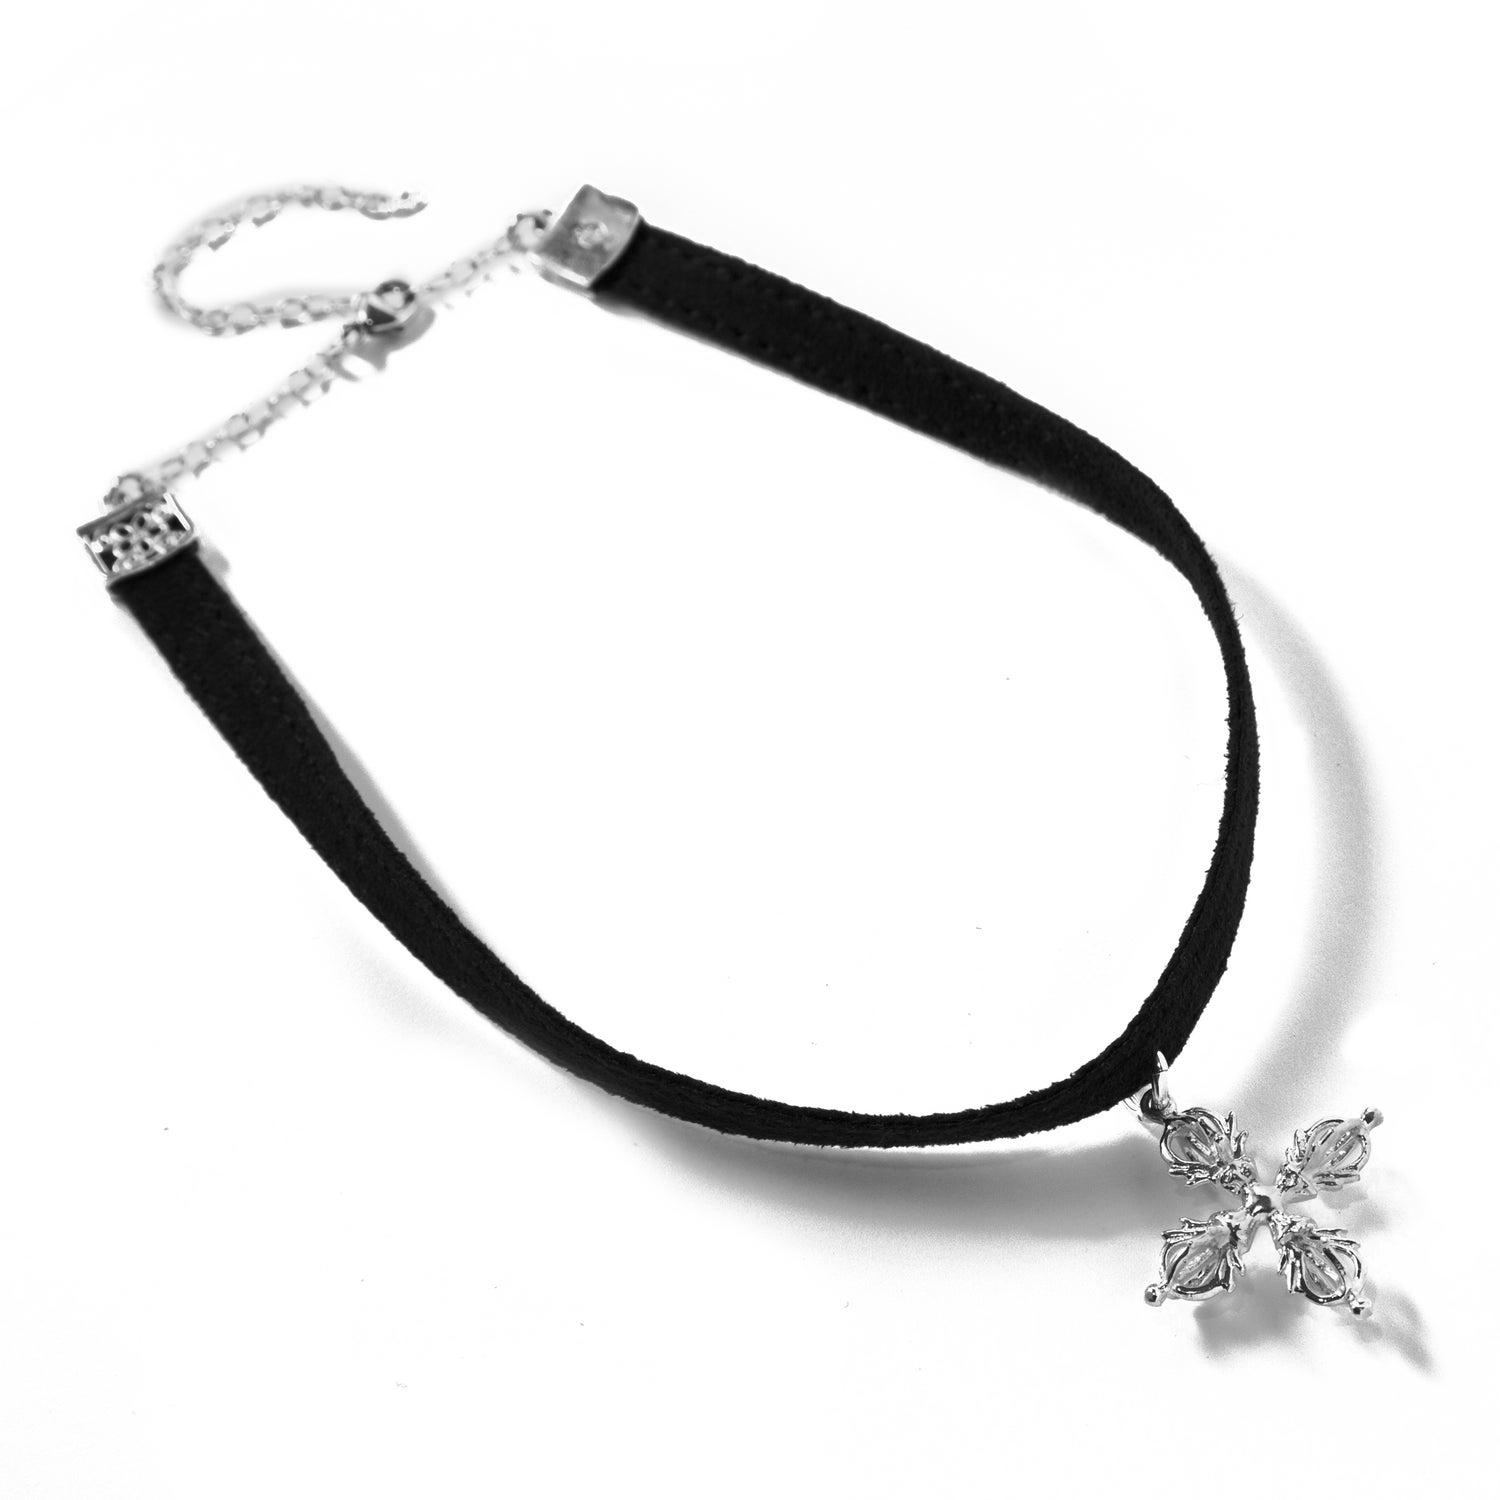 Image of Corinthian Cross choker